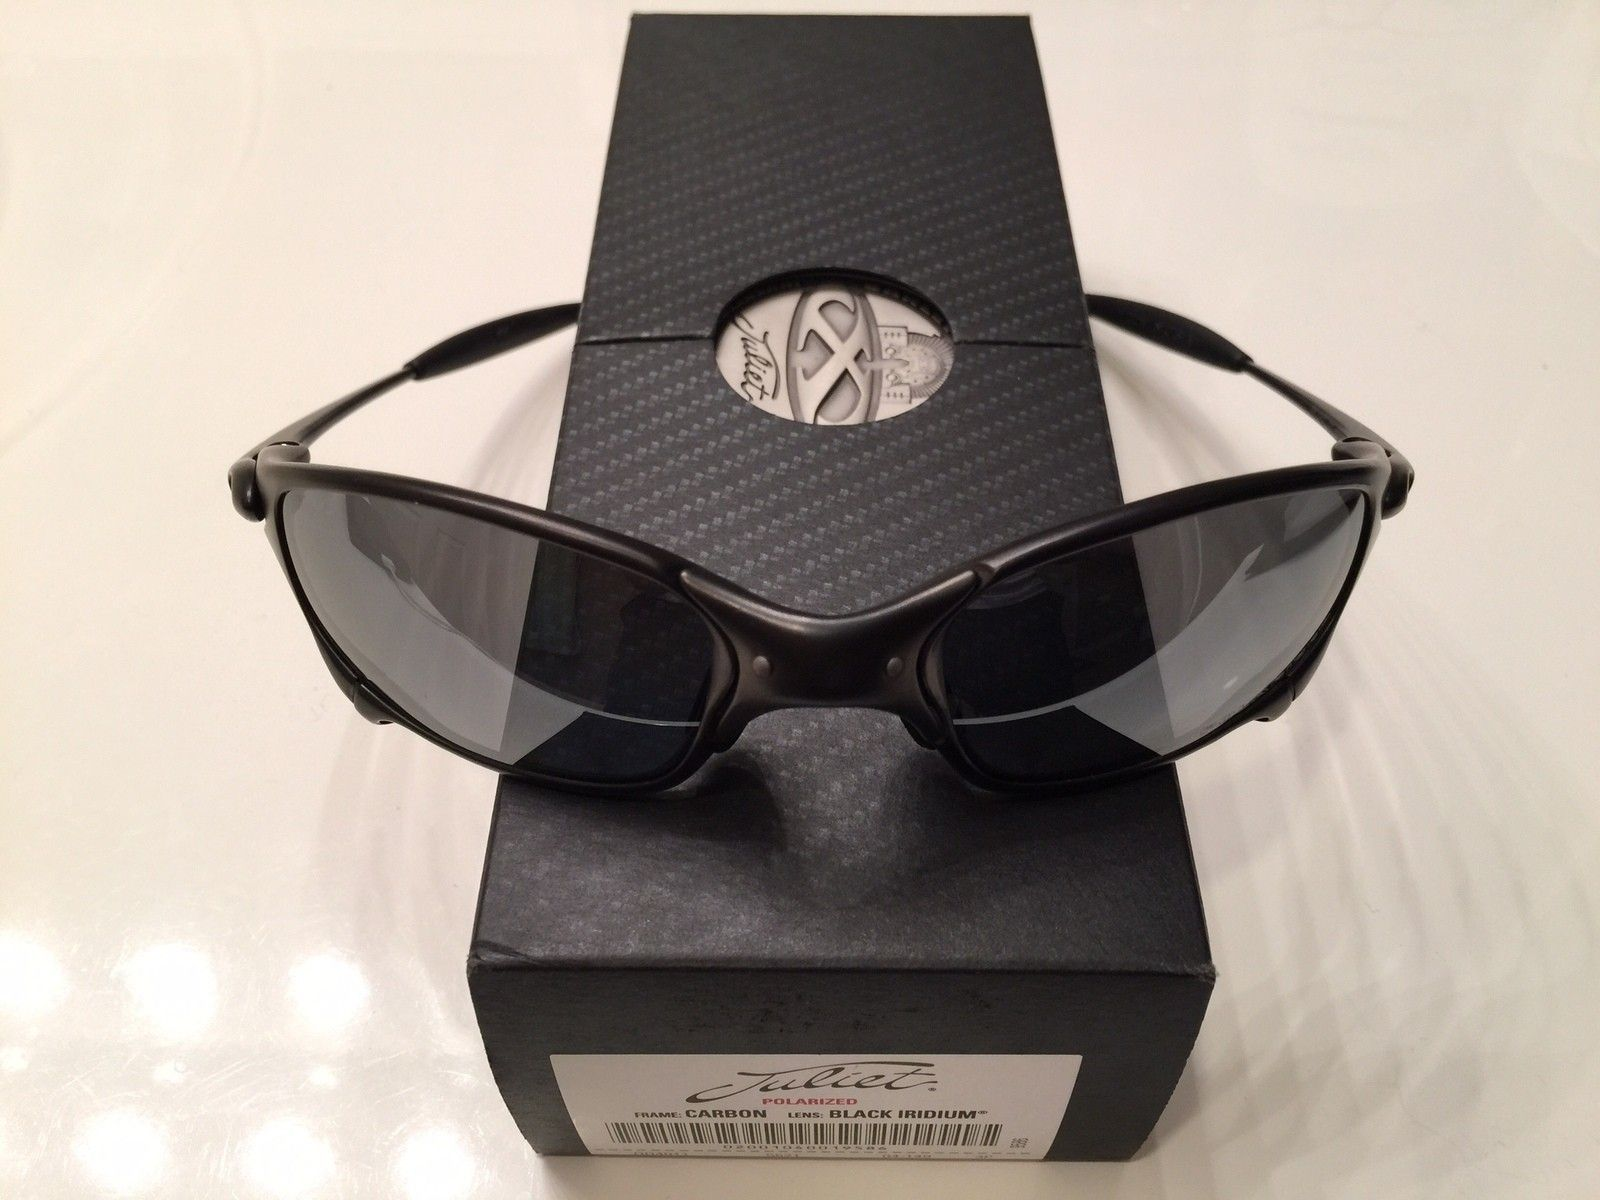 Used XX BI lens ***price dropped*** - IMG_1663.JPG